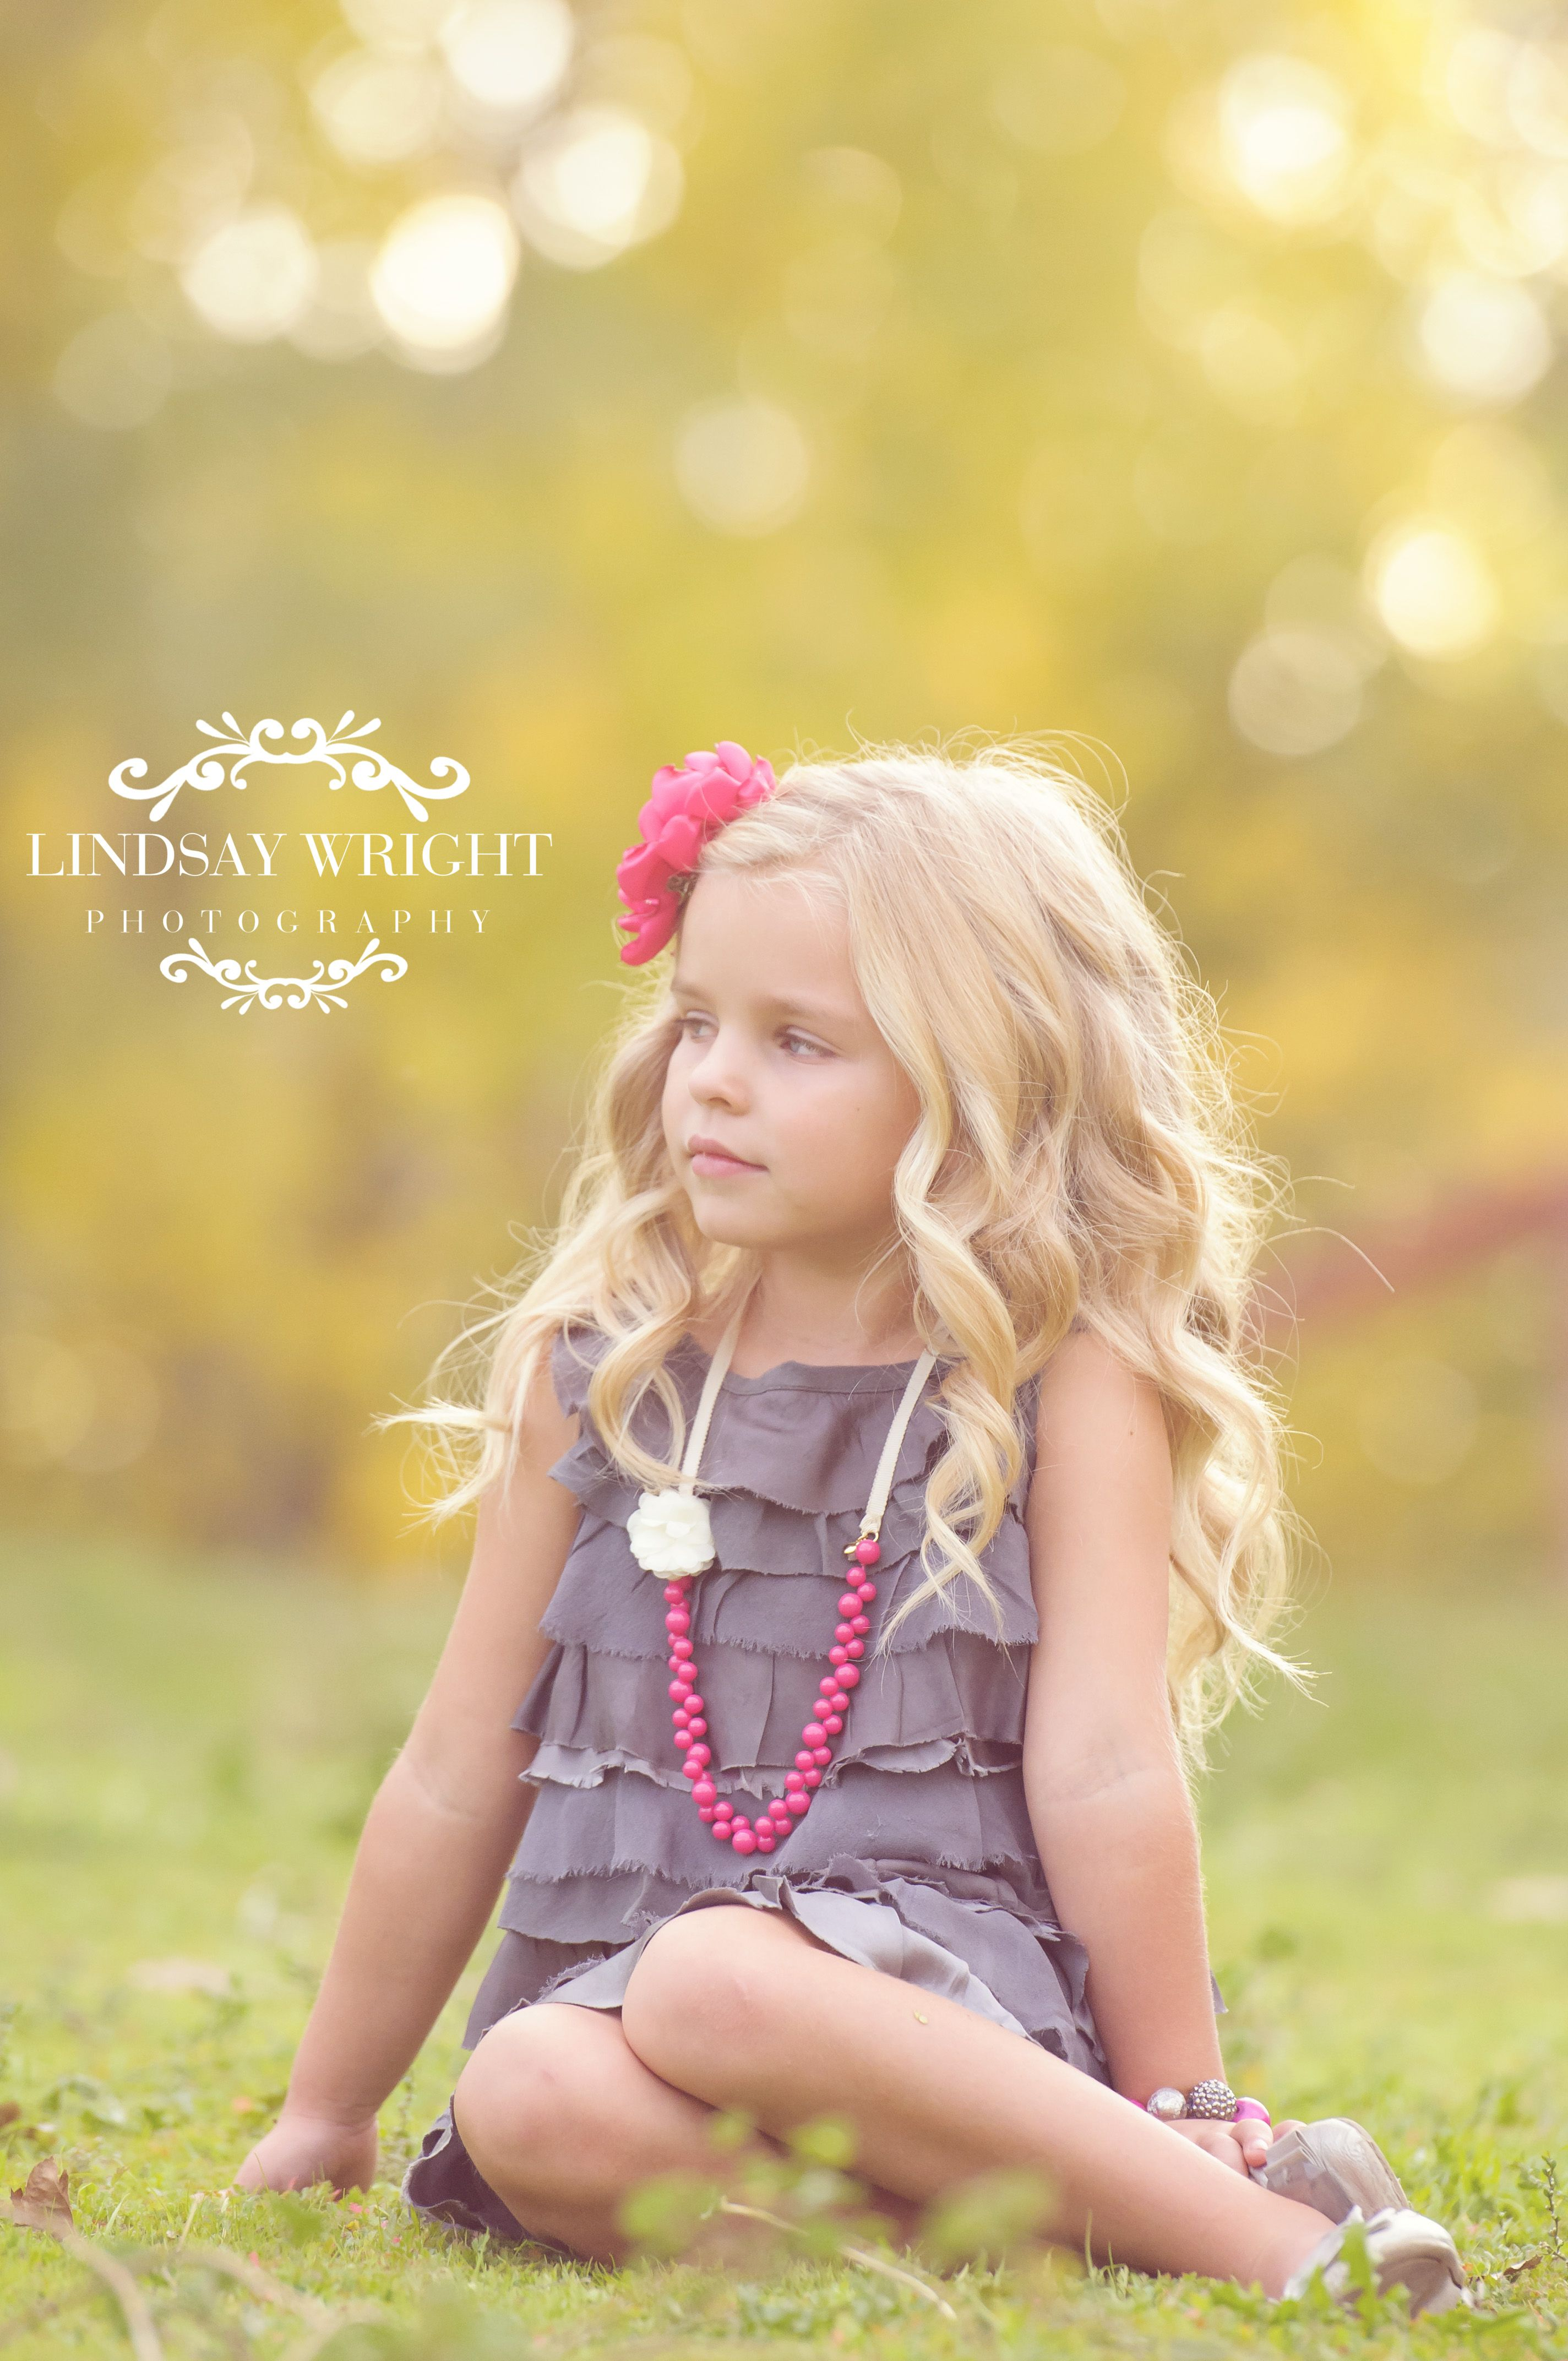 Child photography photo session idea pose ideas prop props girl portrait children photography by lindsay wright photography